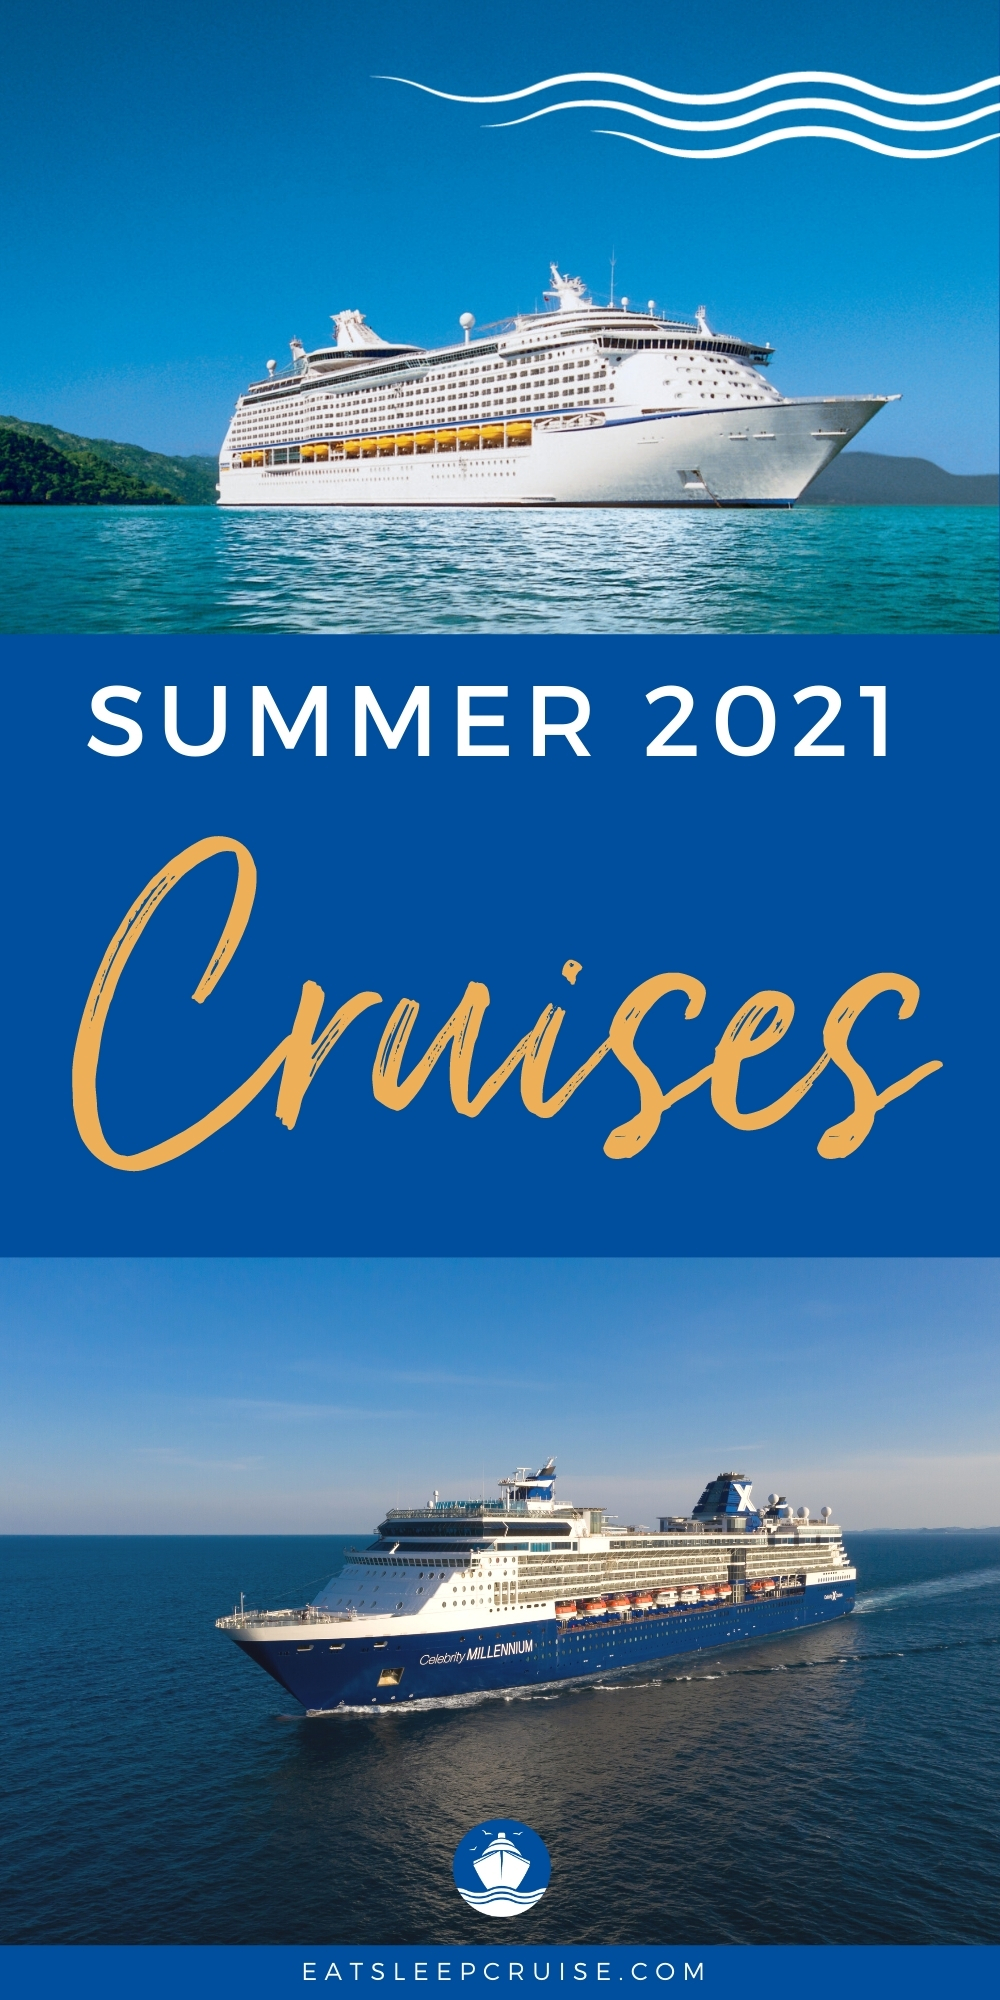 summer 2021 cruises guide